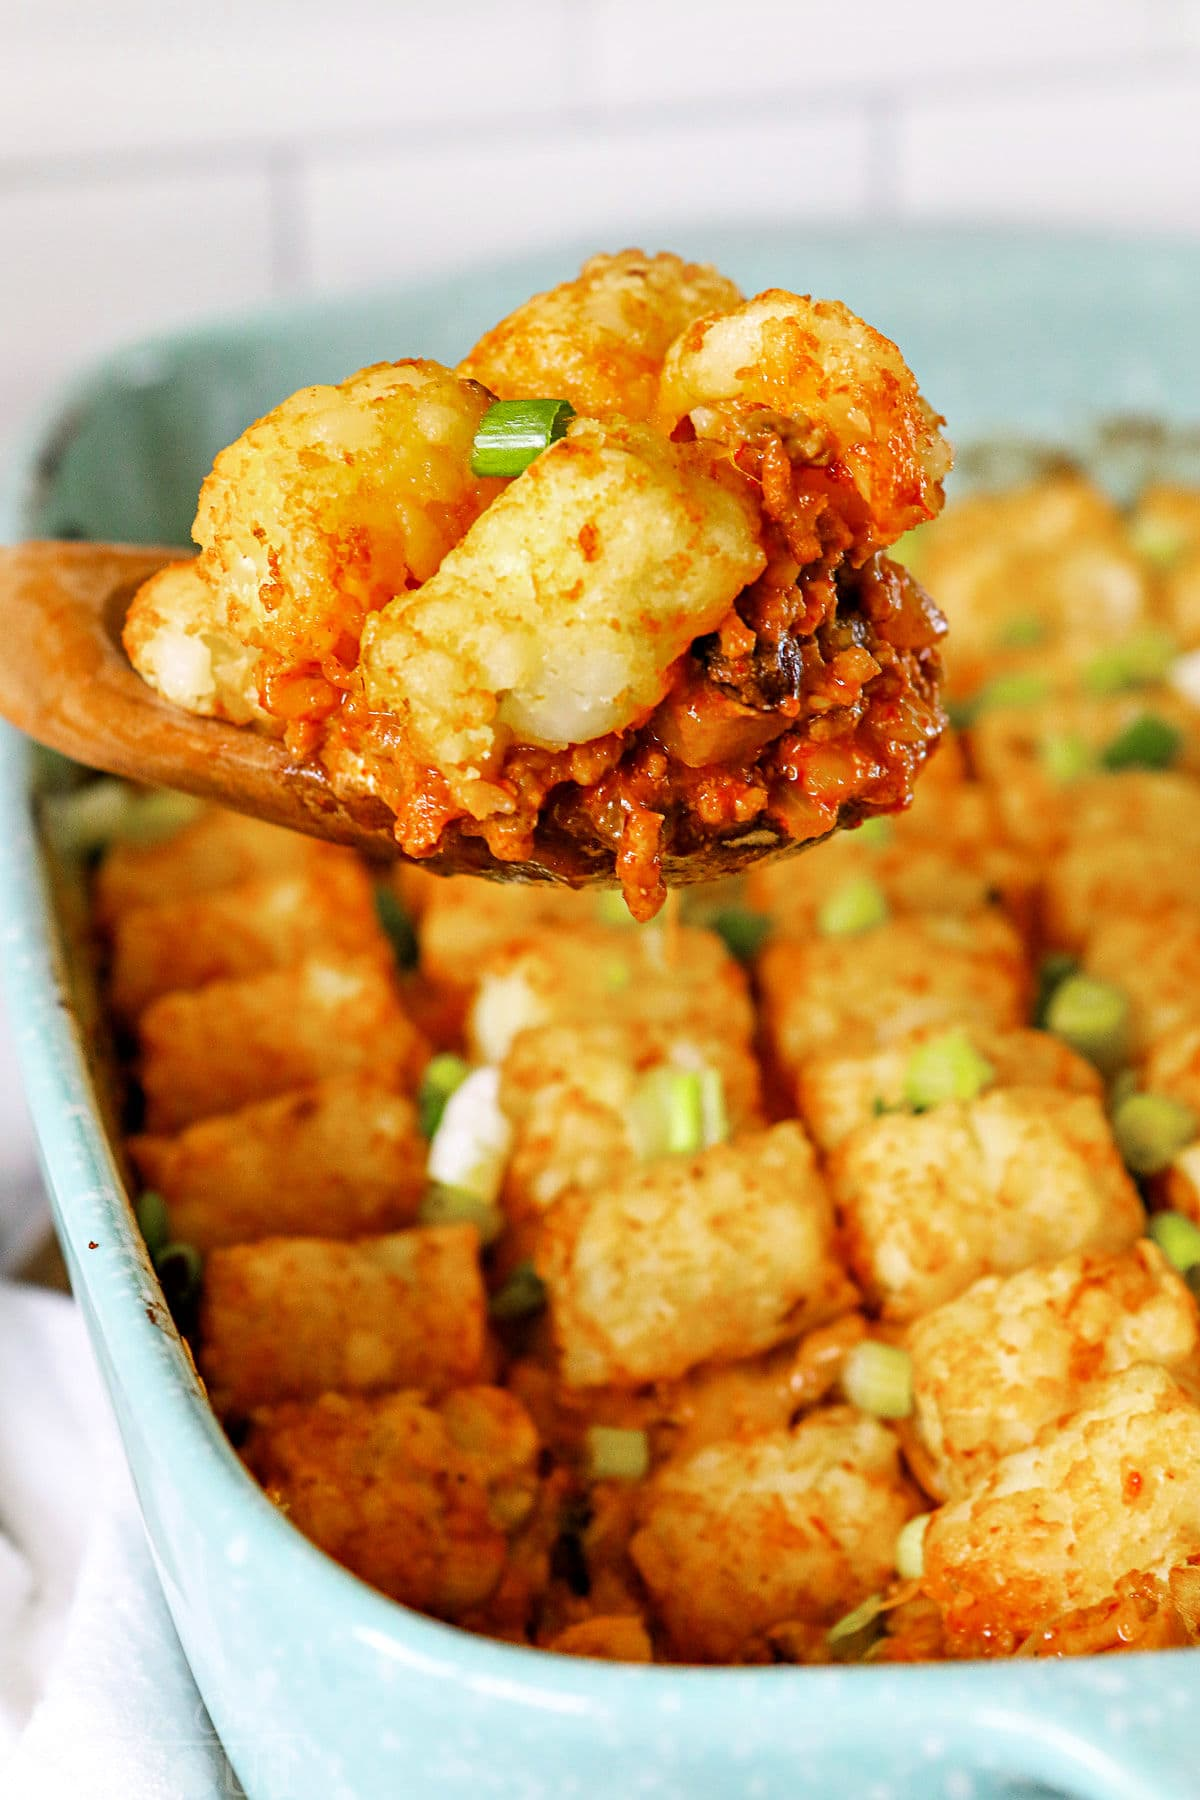 taco tater tot casserole being scooped out of dish with large wood spoon